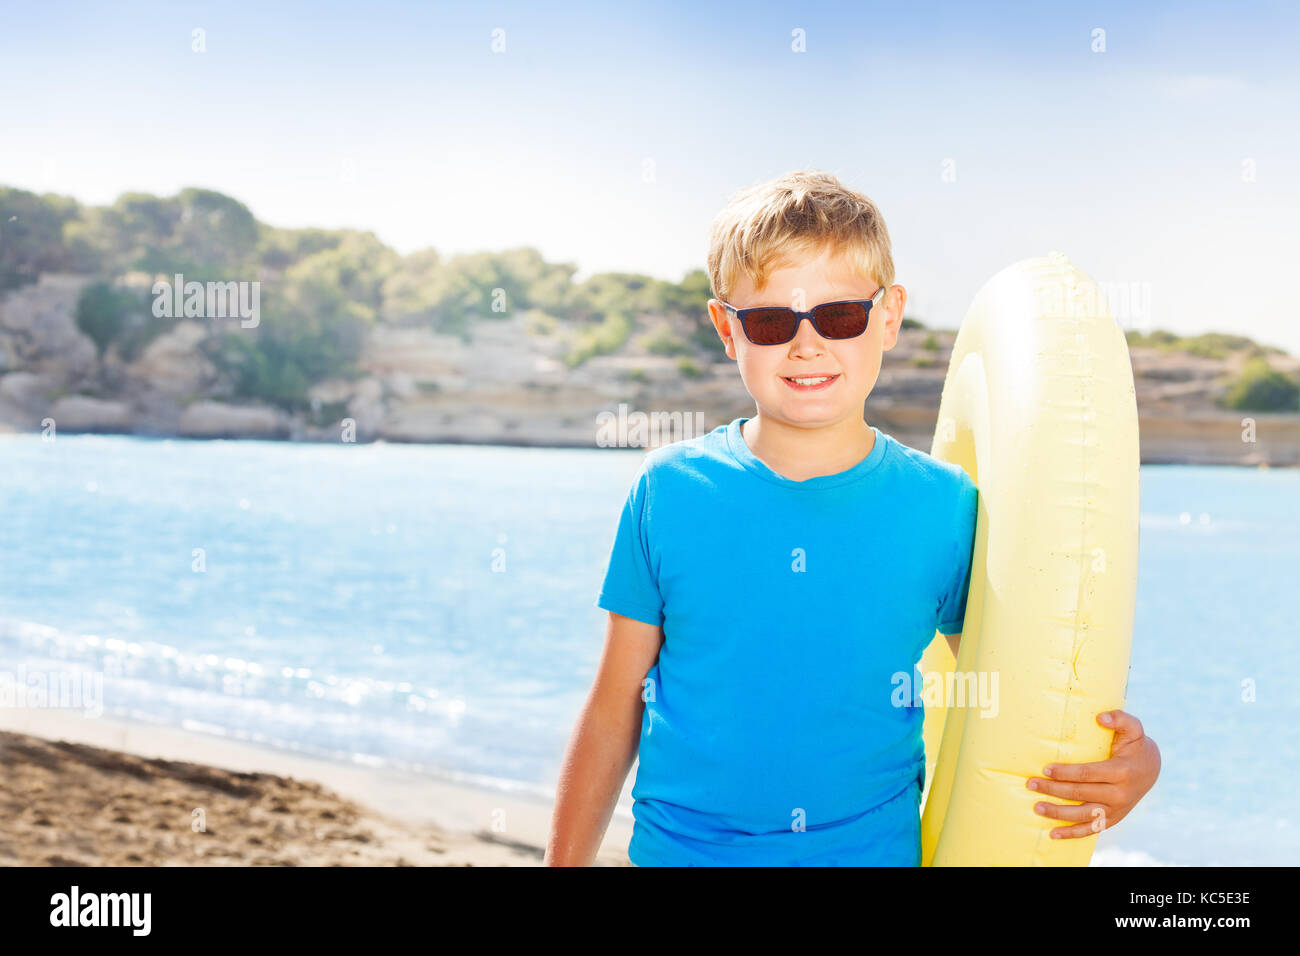 Cute preteen boy standing with inflatable ring on Mediterranean sandy beach - Stock Image